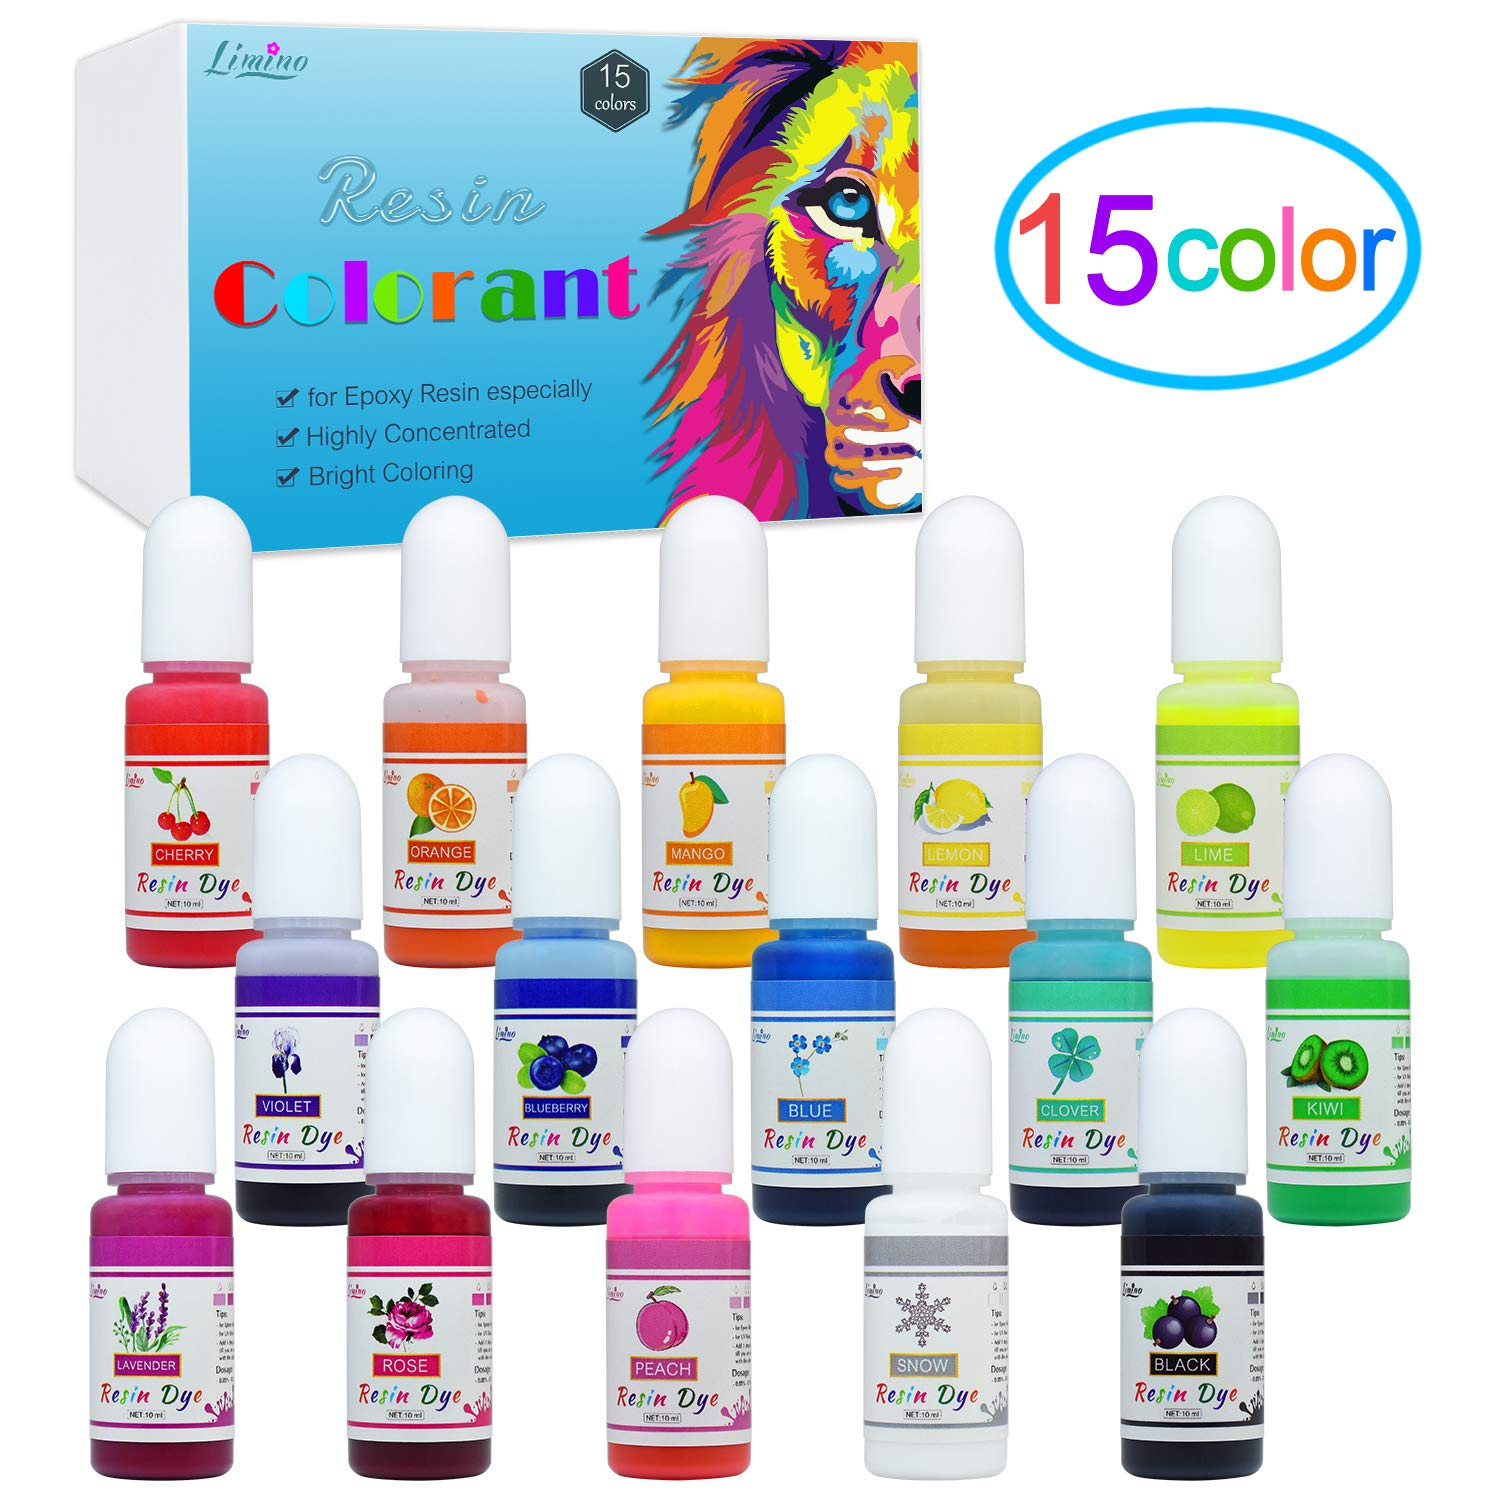 Epoxy Resin Pigment - 15 Color Liquid Epoxy Resin Dye - Highly Concentrated Epoxy Resin Colorant for Resin Coloring Art, DIY Jewelry Making Supplies - AB Resin Coloring for Paint, Crafts - 10ml Each